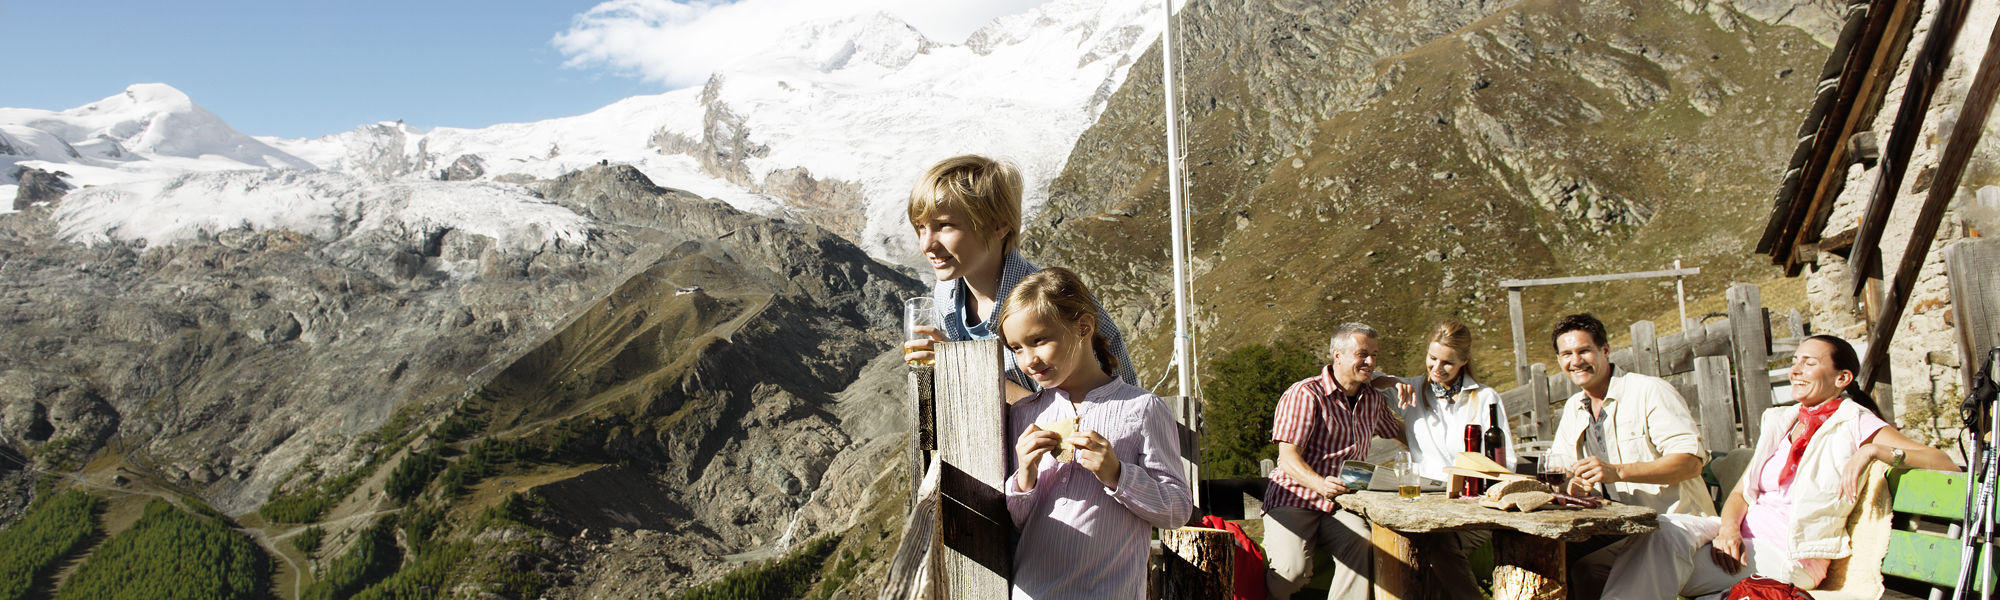 Family trips in the Free Republic of Holidays Saas-Fee